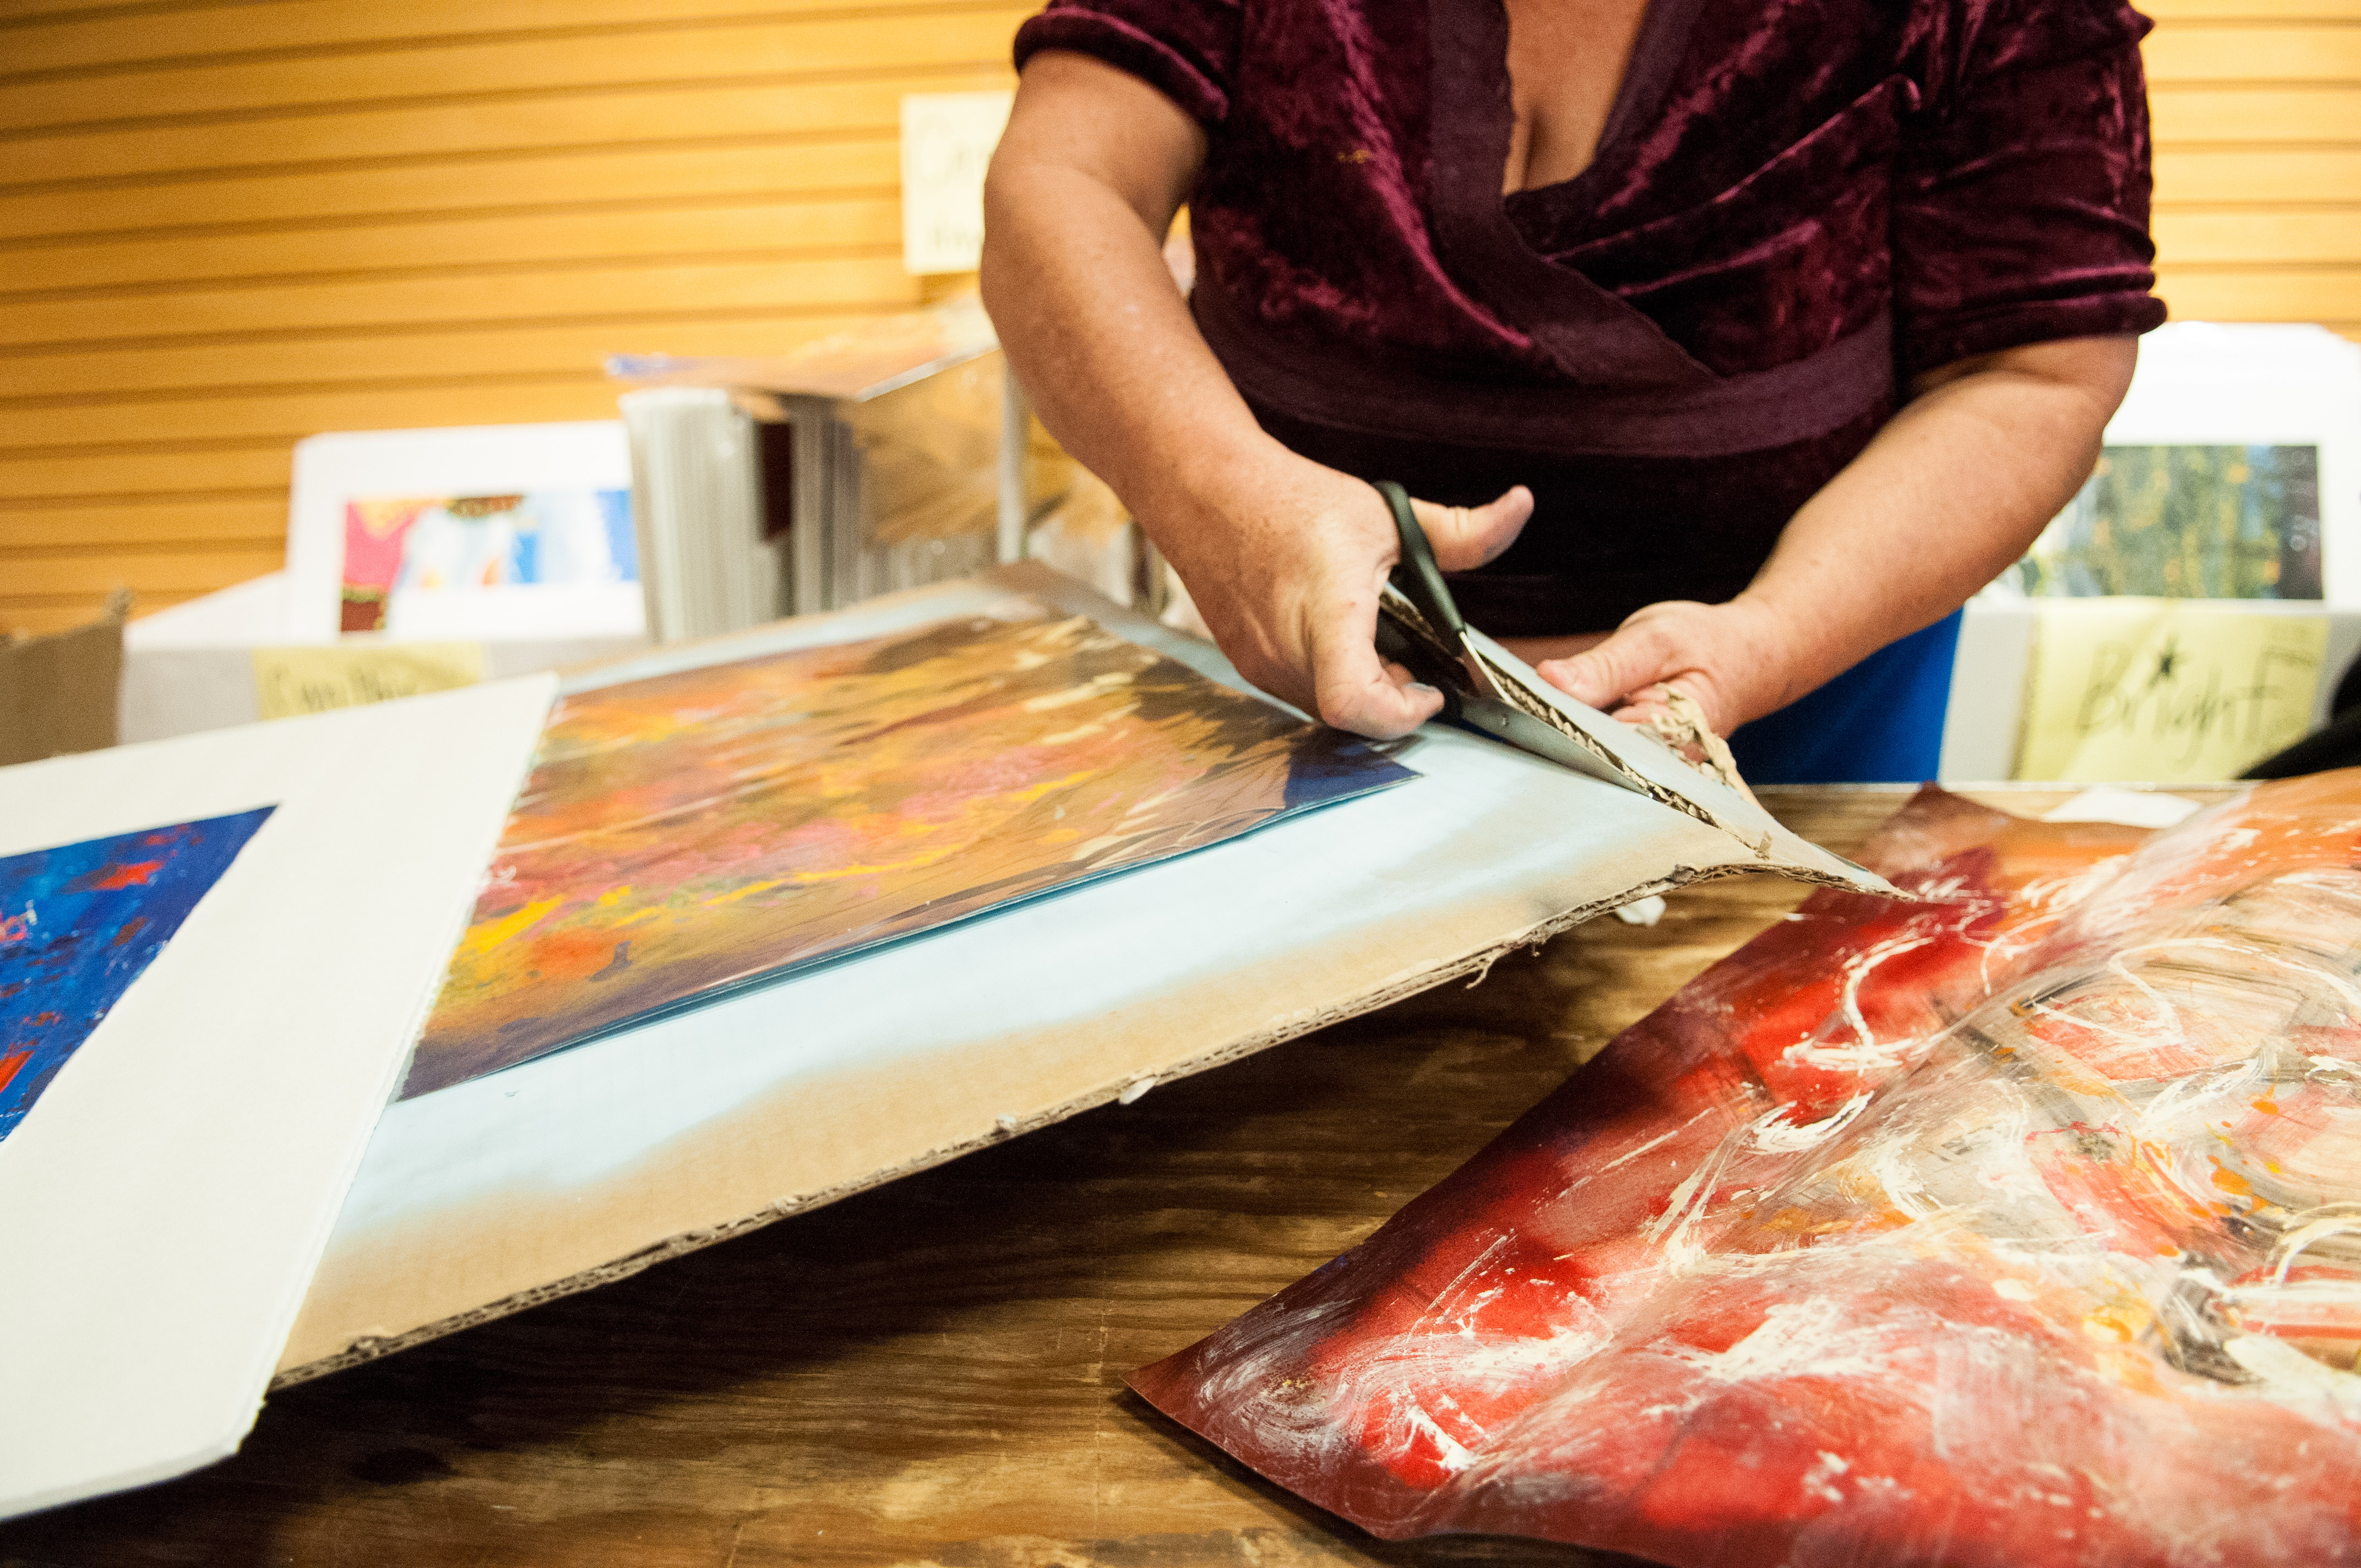 An artist cuts her art piece to the right size for mounting. Photo by Skylar Isdale